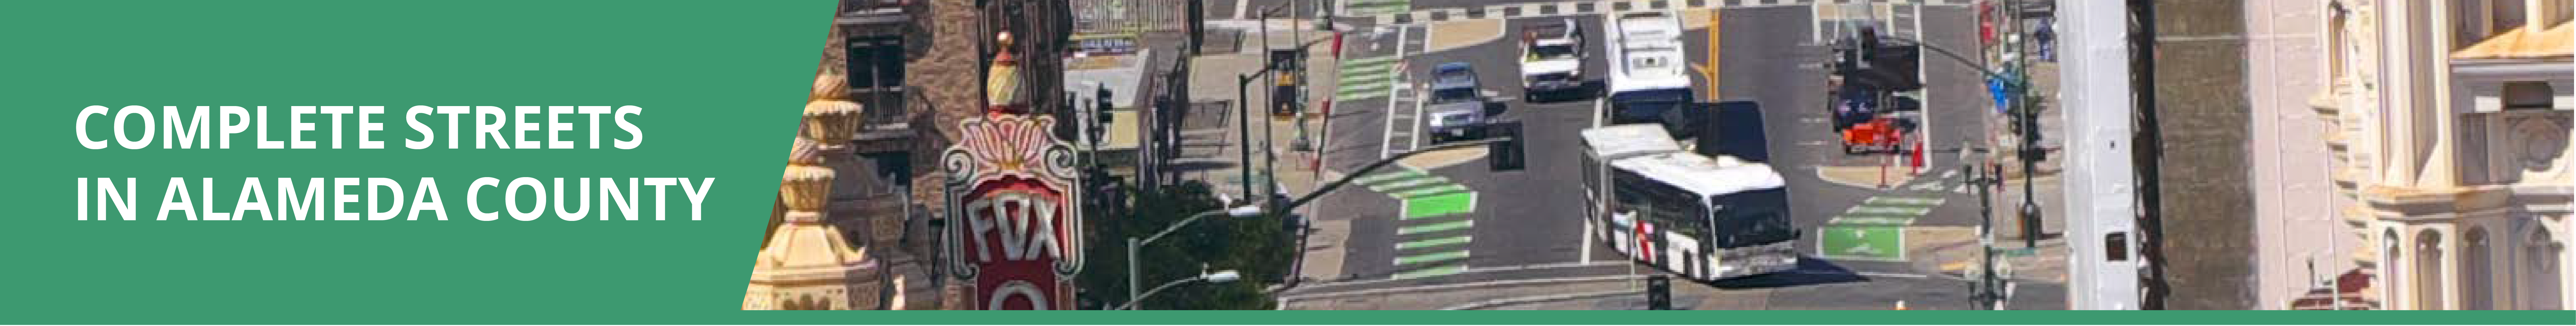 Complete Streets in Alameda County - Alameda CTC